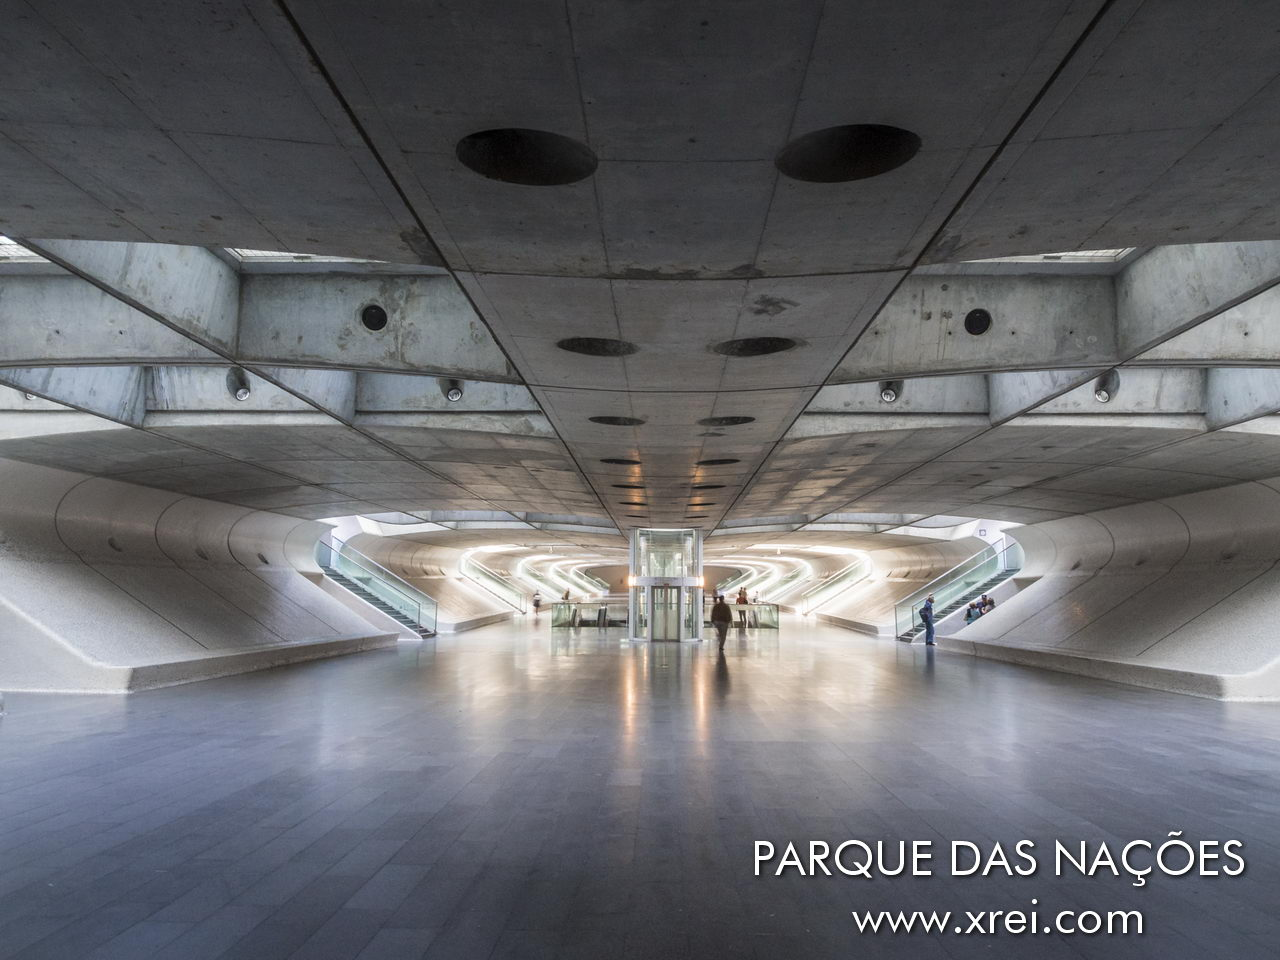 Gallery of access to the Lisbon metro at Gare do Oriente, Oriente station, with a futuristic architecture designed in concrete and glass